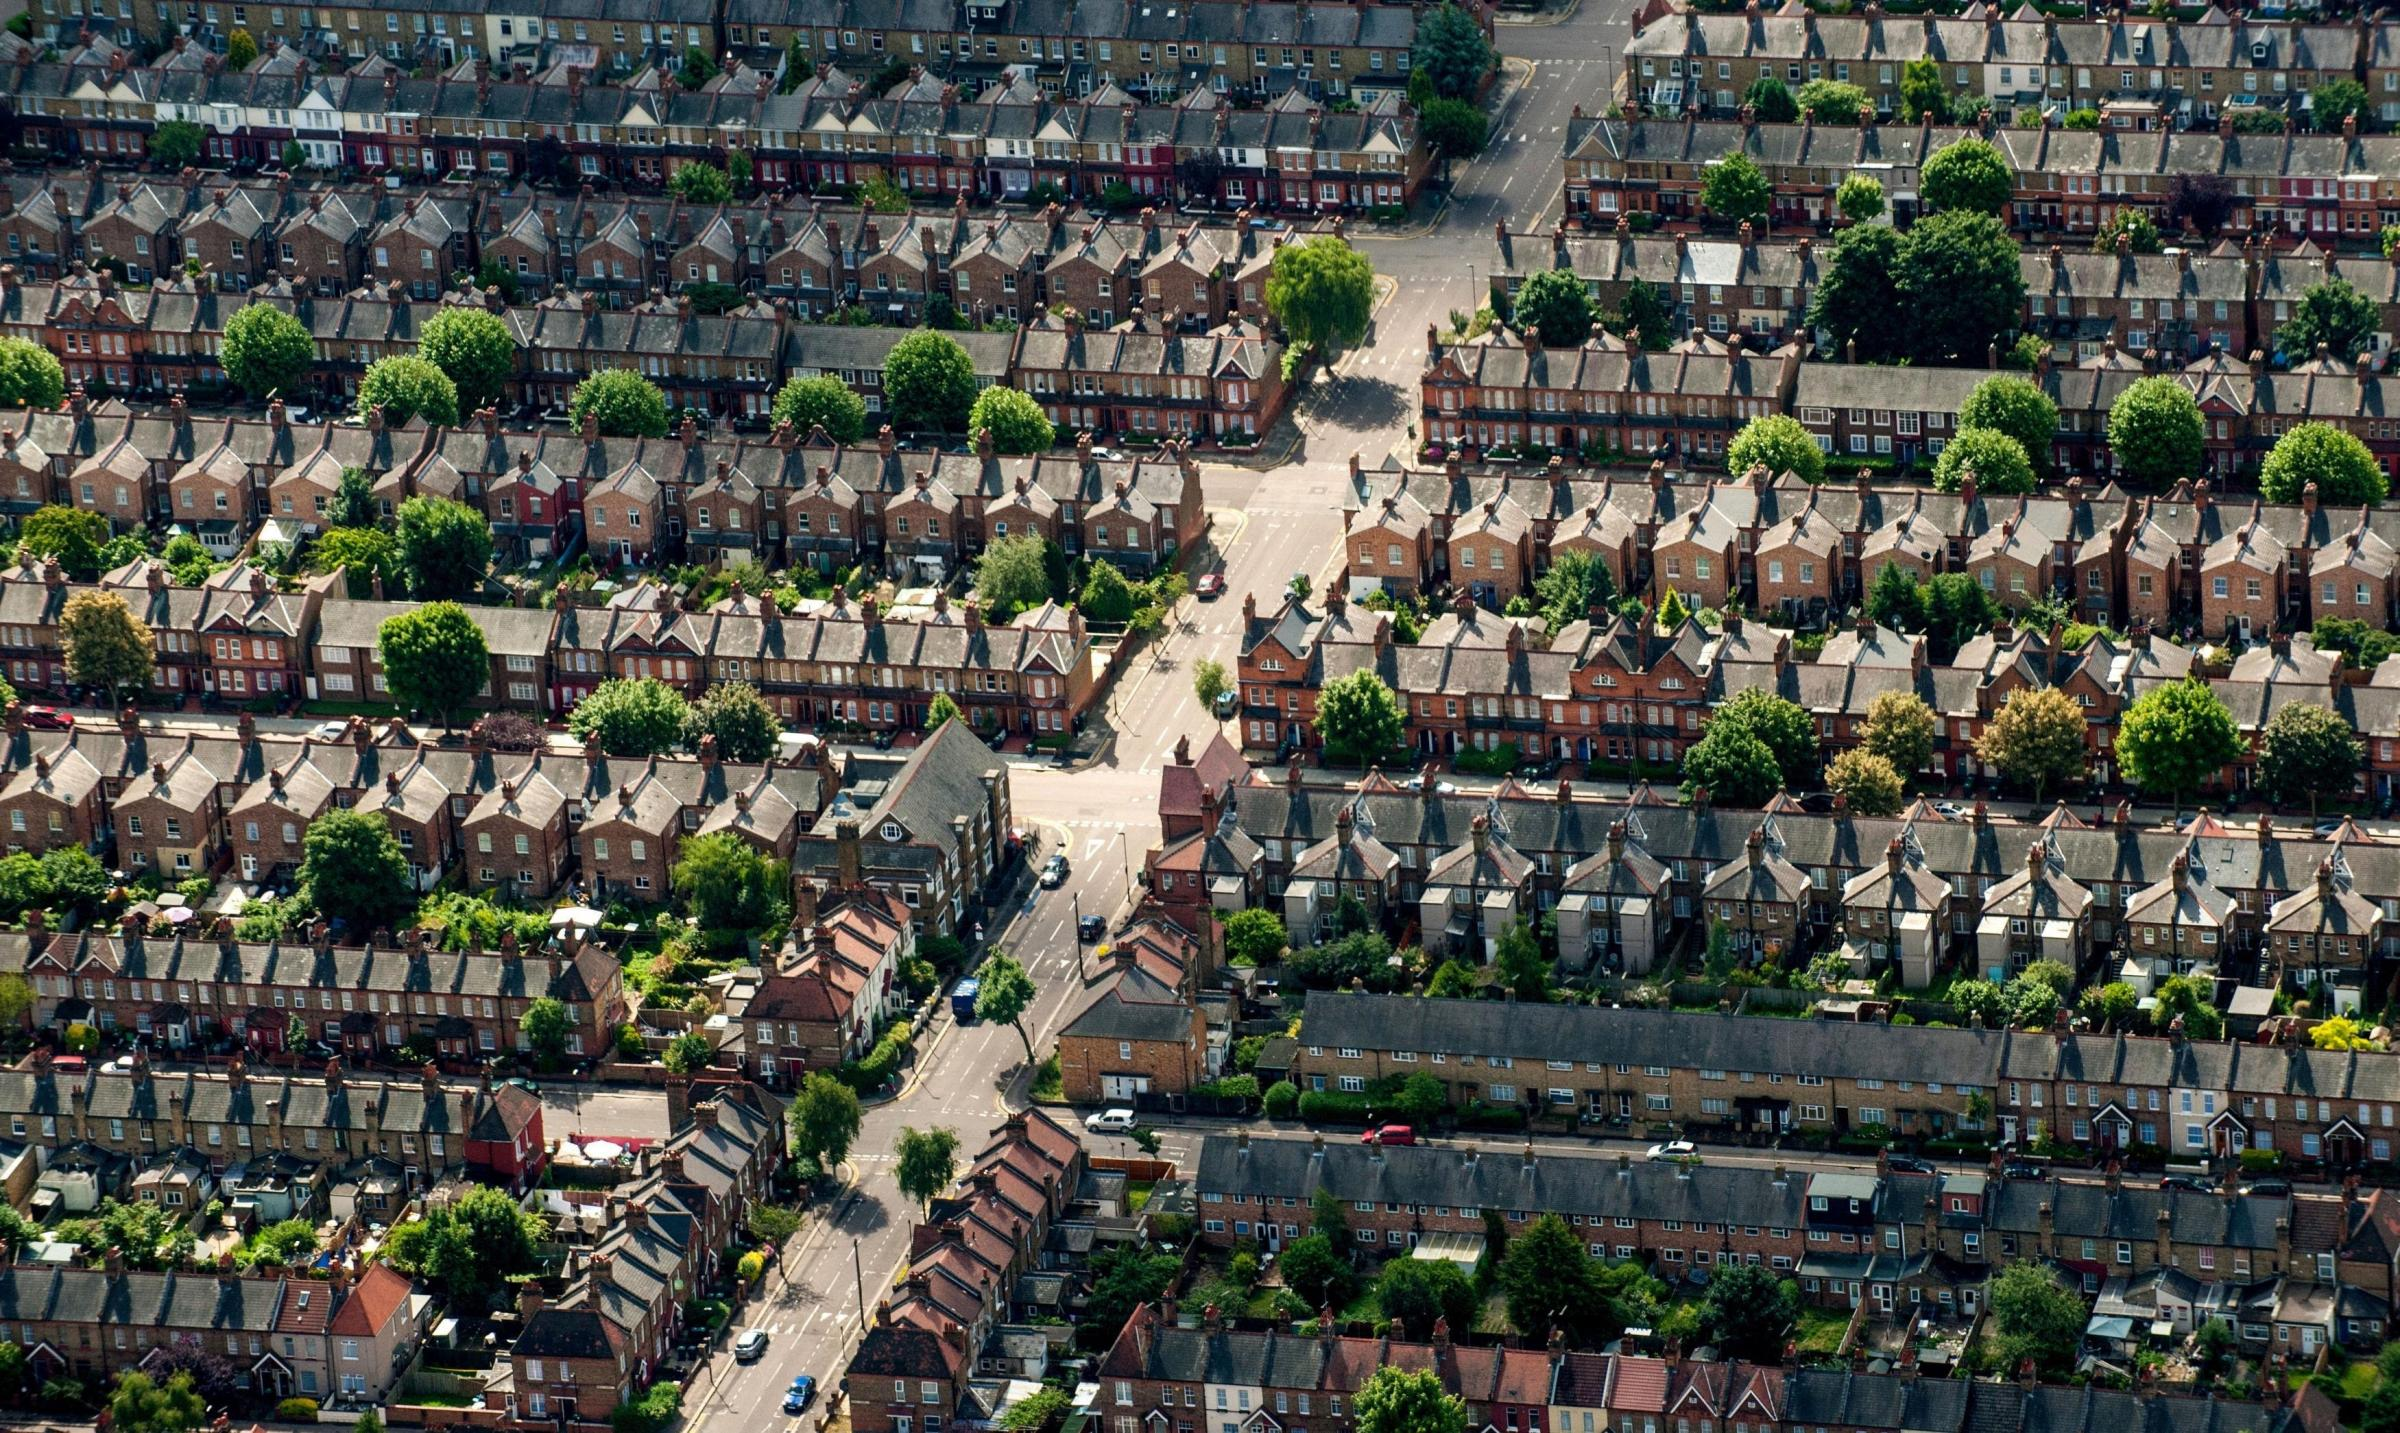 A survey suggests that home-owners' confidence in the property market has been boosted over the past six months (Picture: Dominic Lipinski/PA Wire)